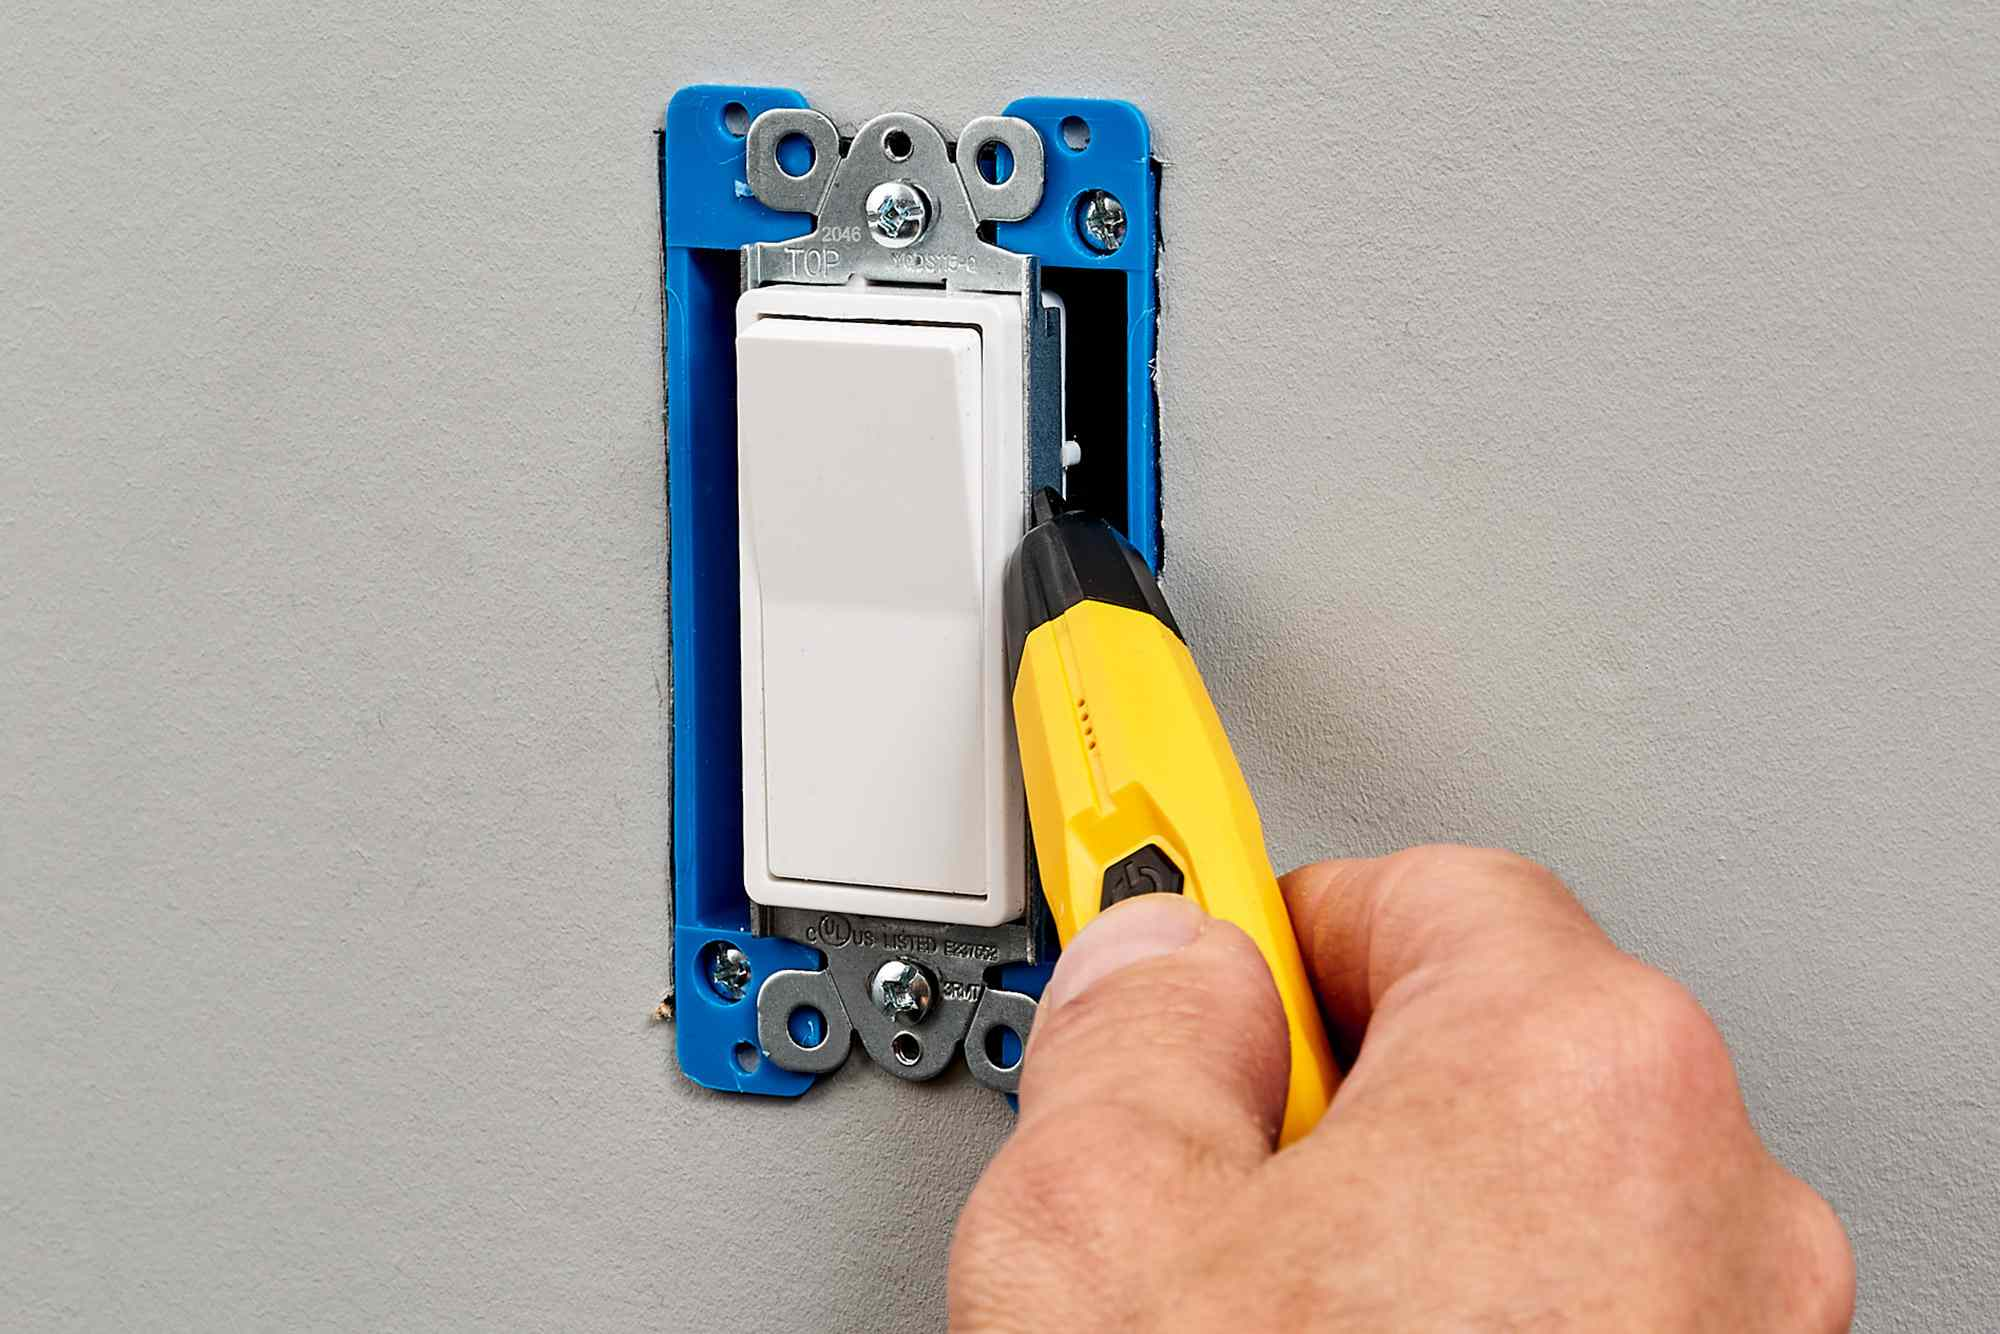 Yellow non-contact voltage tester testing light switch